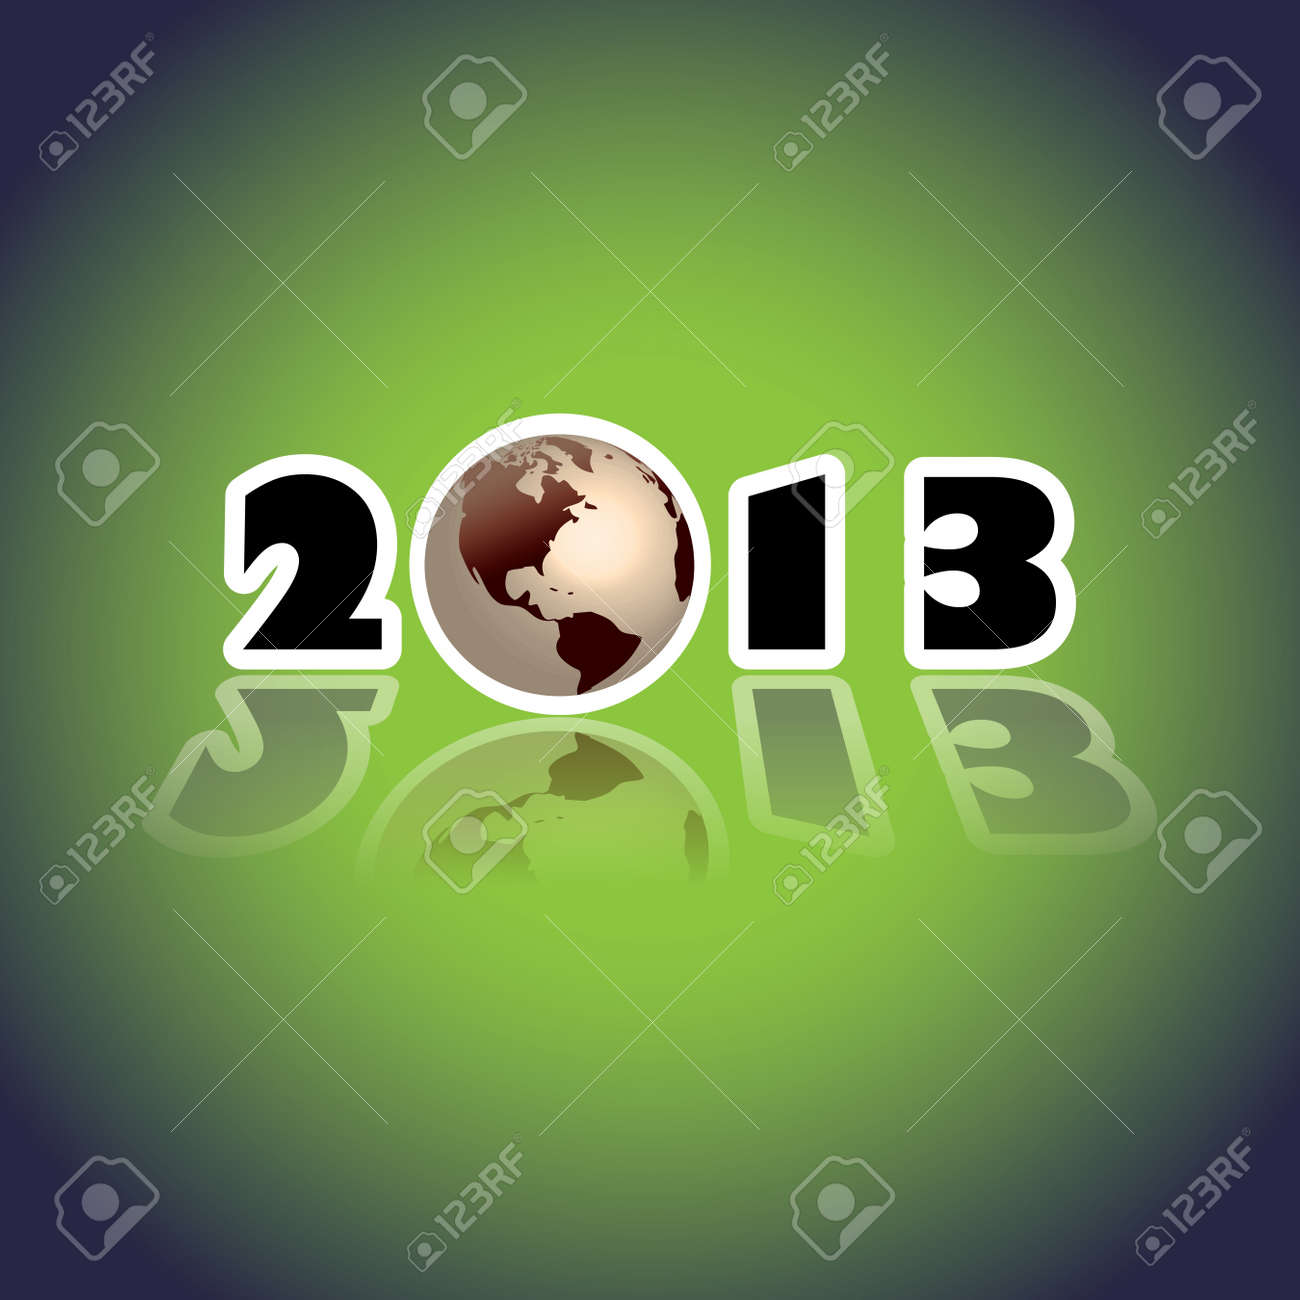 2013 concept with planet Earth, illustration Stock Vector - 16262095